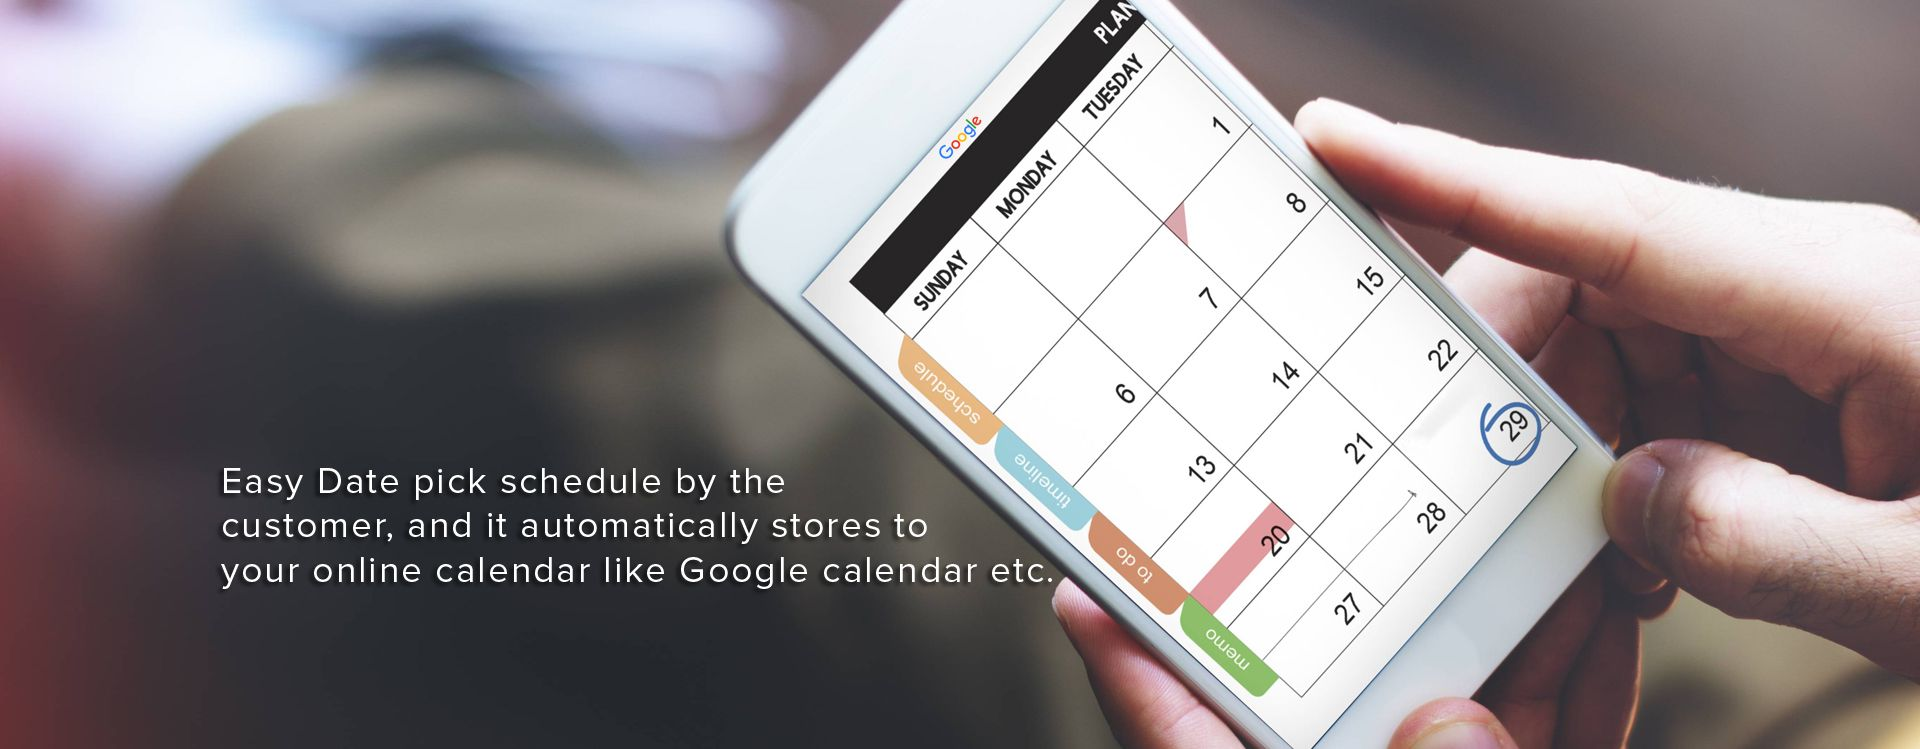 Easy Date pick schedule by the customer | easy salon sofware